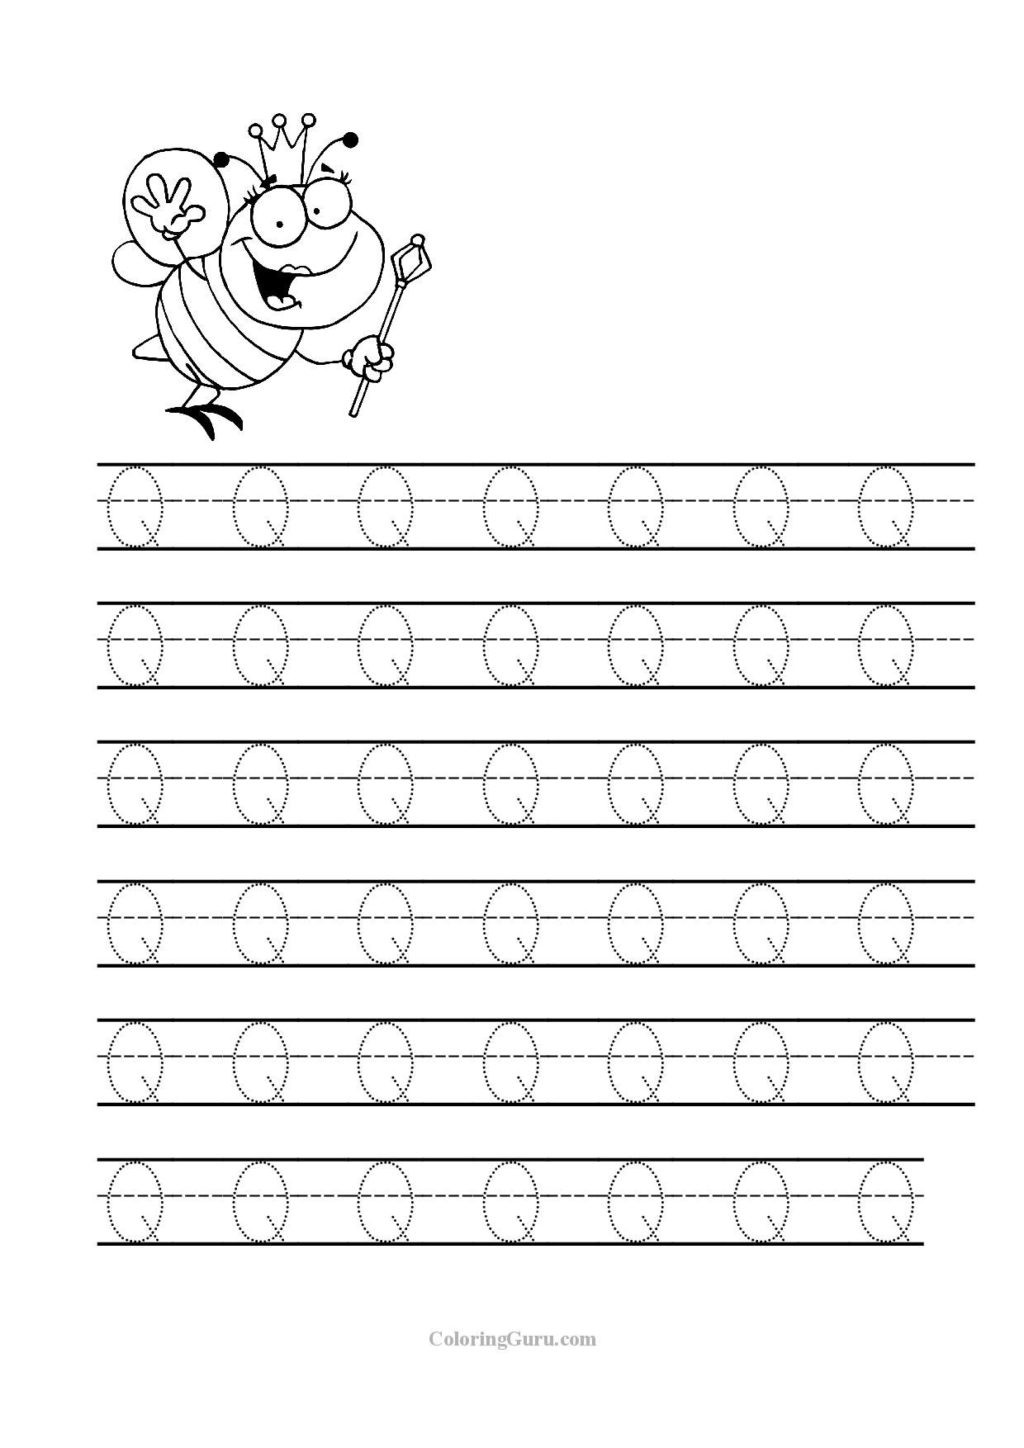 Letter O Worksheets for Preschool Worksheet Tracing Letter Q Worksheets for Preschool Jpg